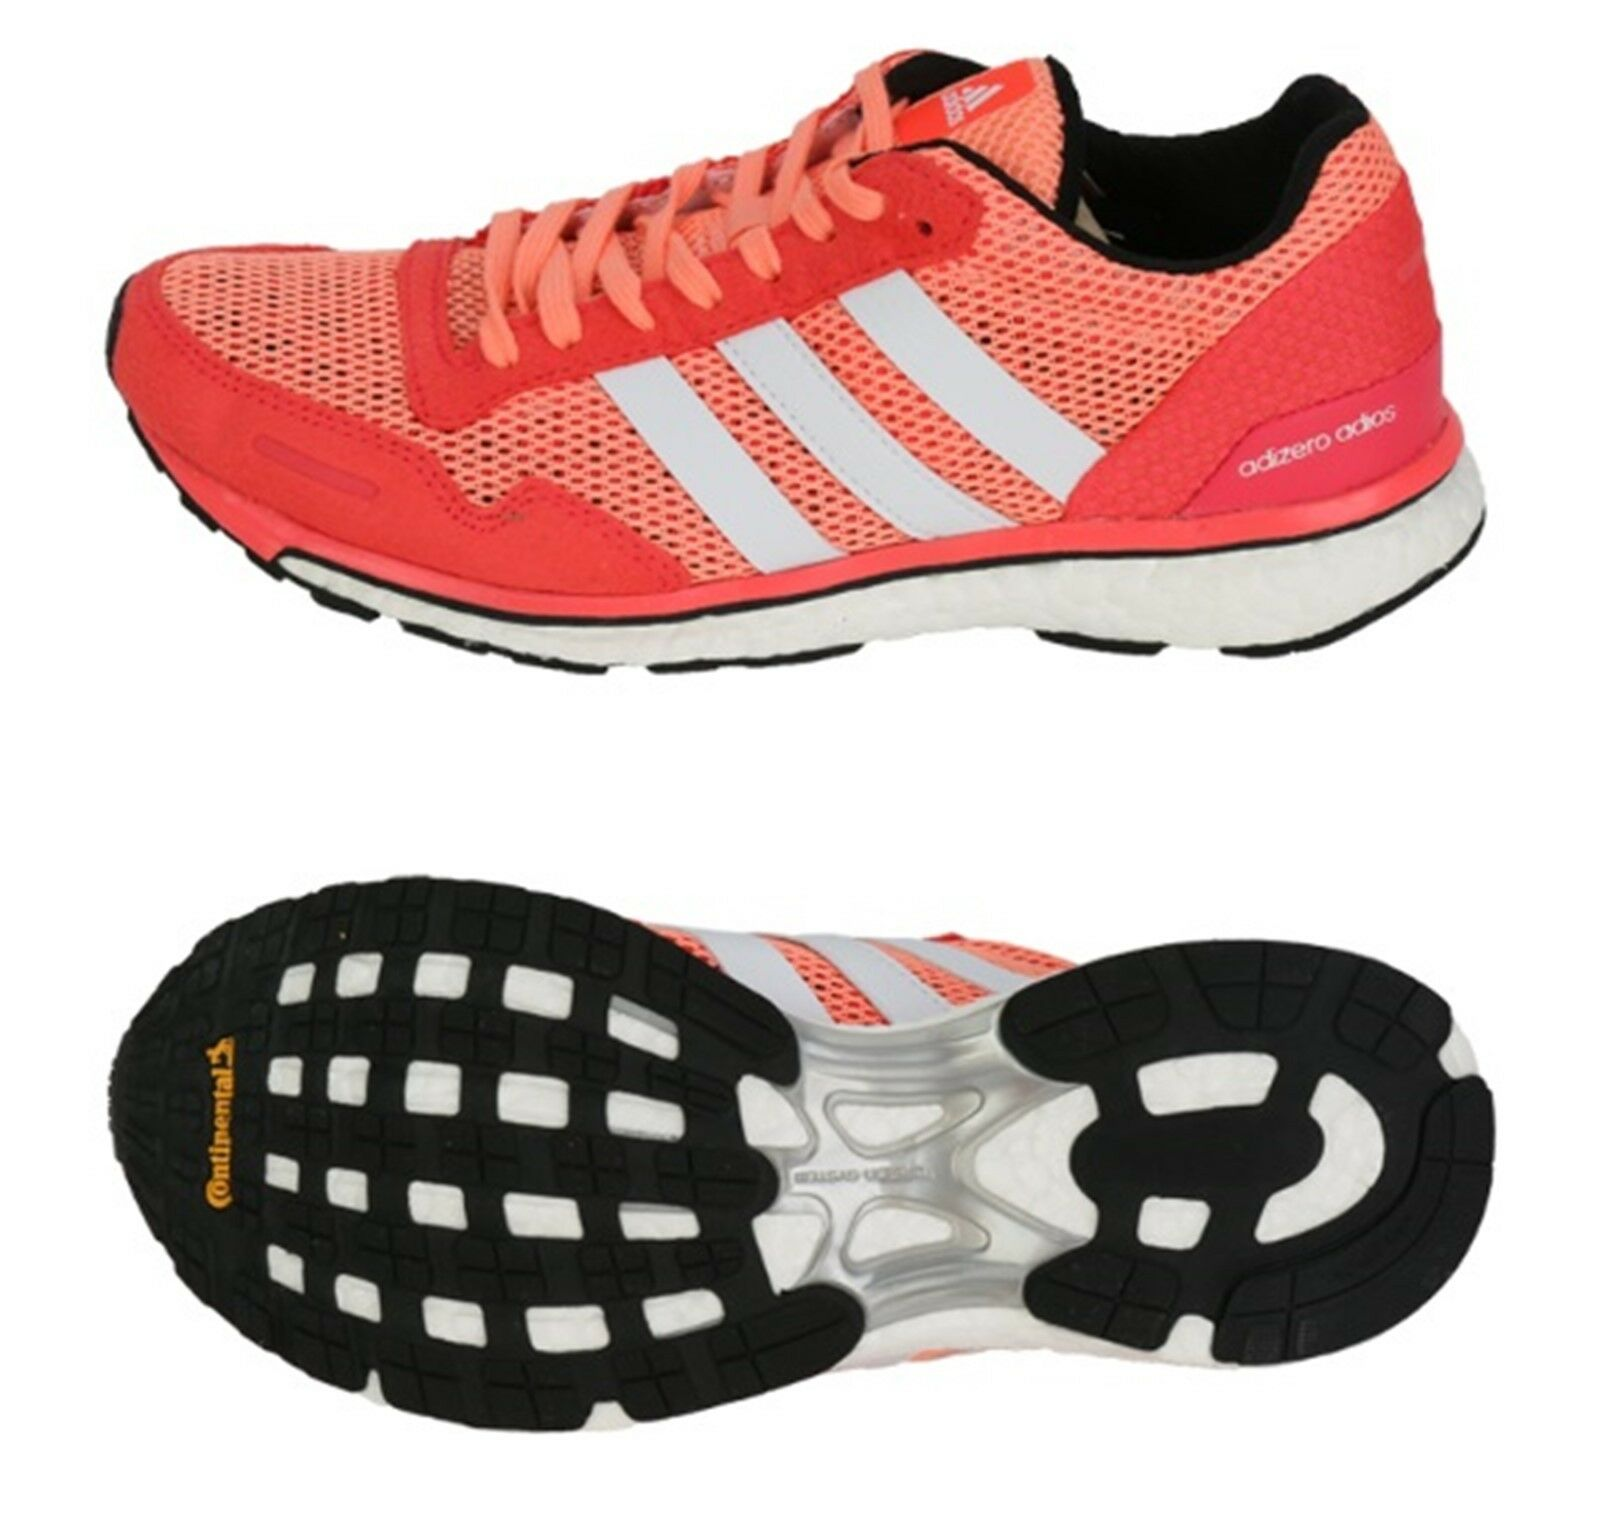 Adidas Women Adizero Adios 3 shoes Running Red (Pink) Sneakers Boot shoes AF6567